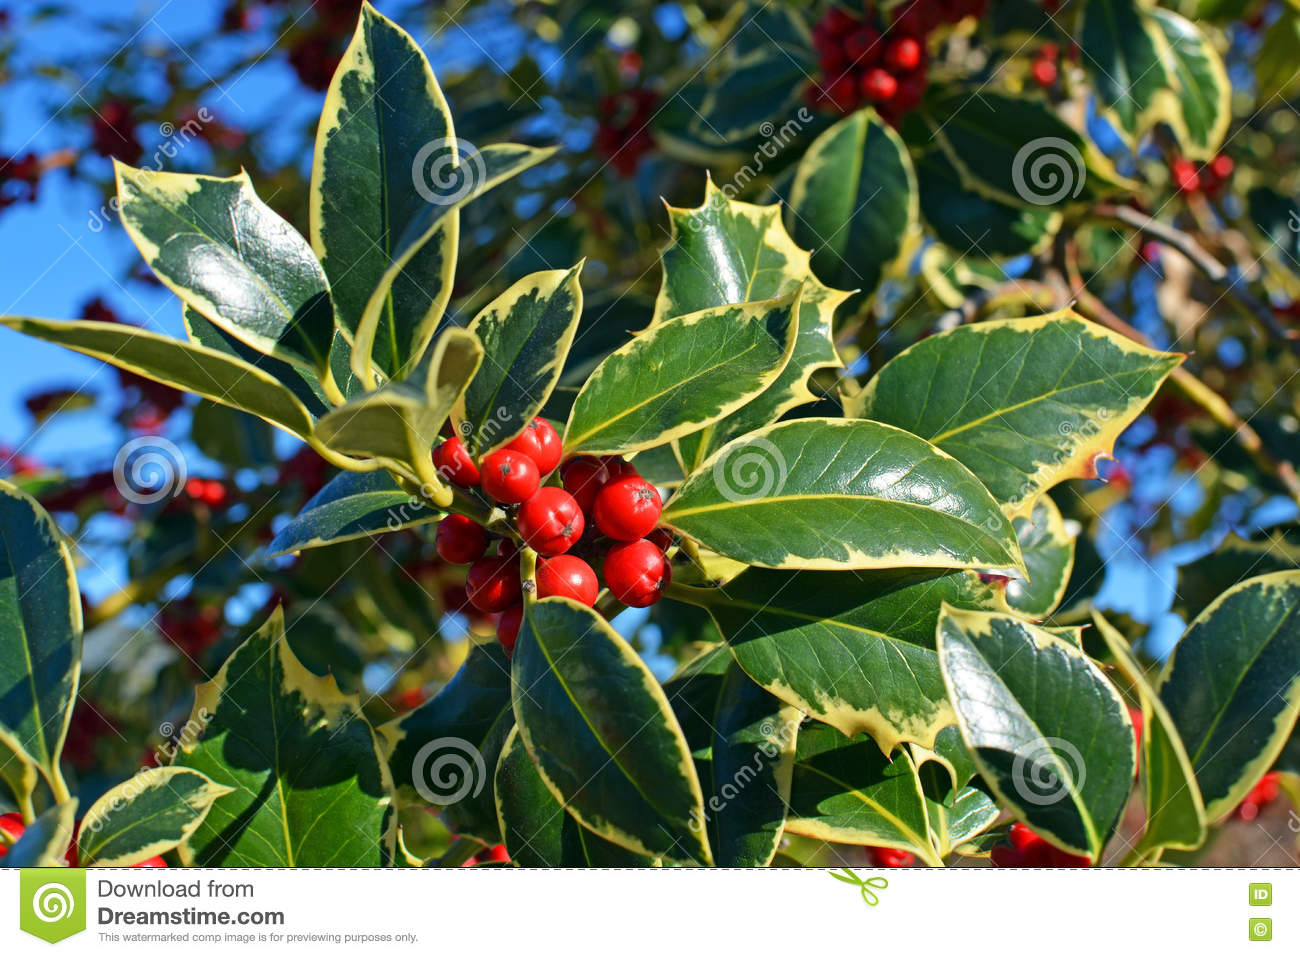 Christmas Holly Tree.Christmas Holly Tree Closeup Of Berries And Green Variegated